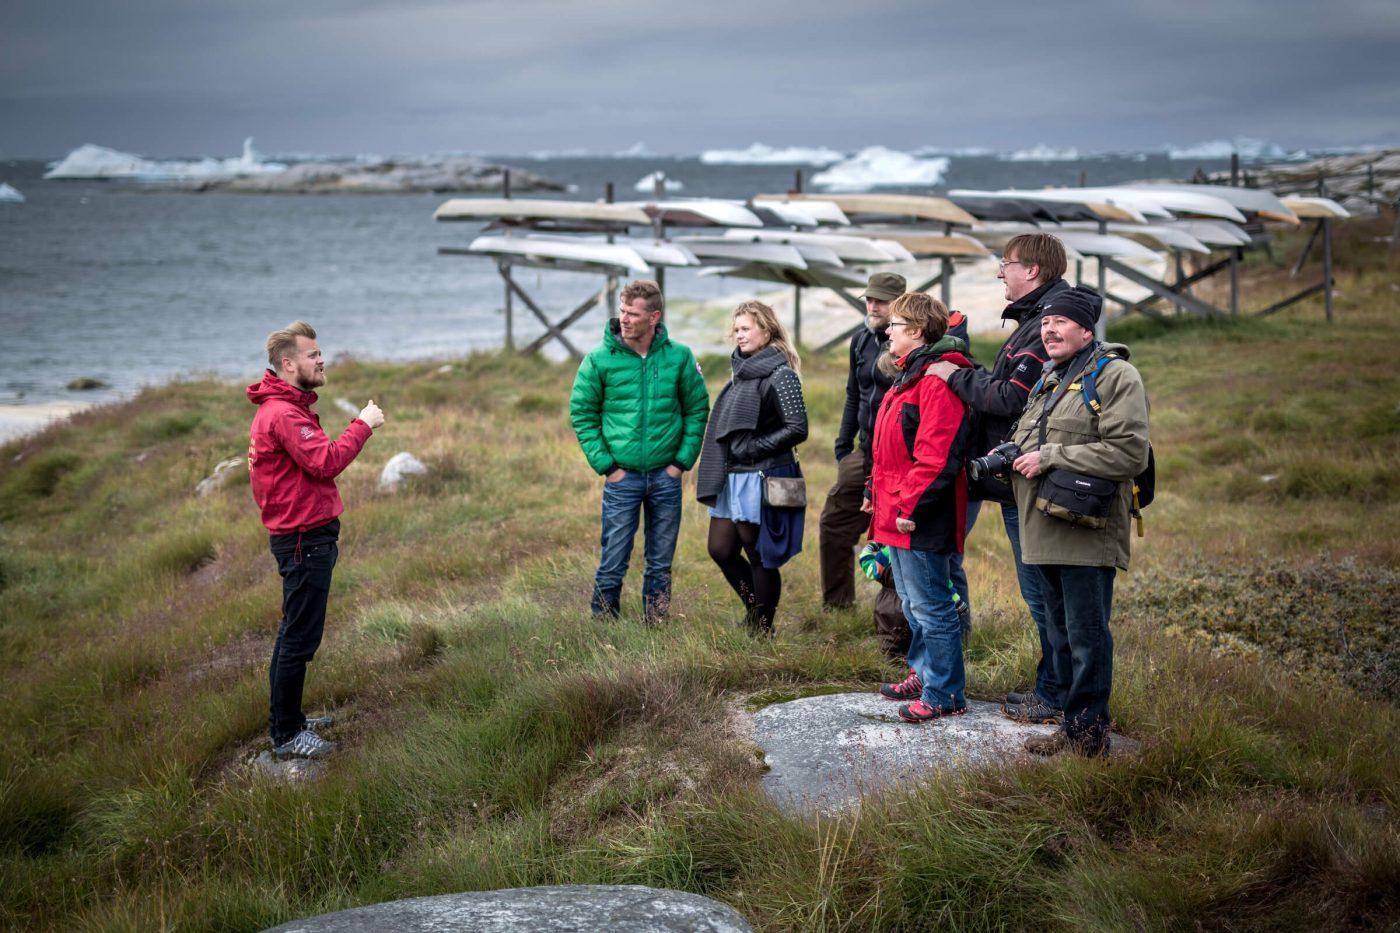 A guided walk in Ilulissat with traditional Greenland kayaks in the background. Photo by Mads Pihl